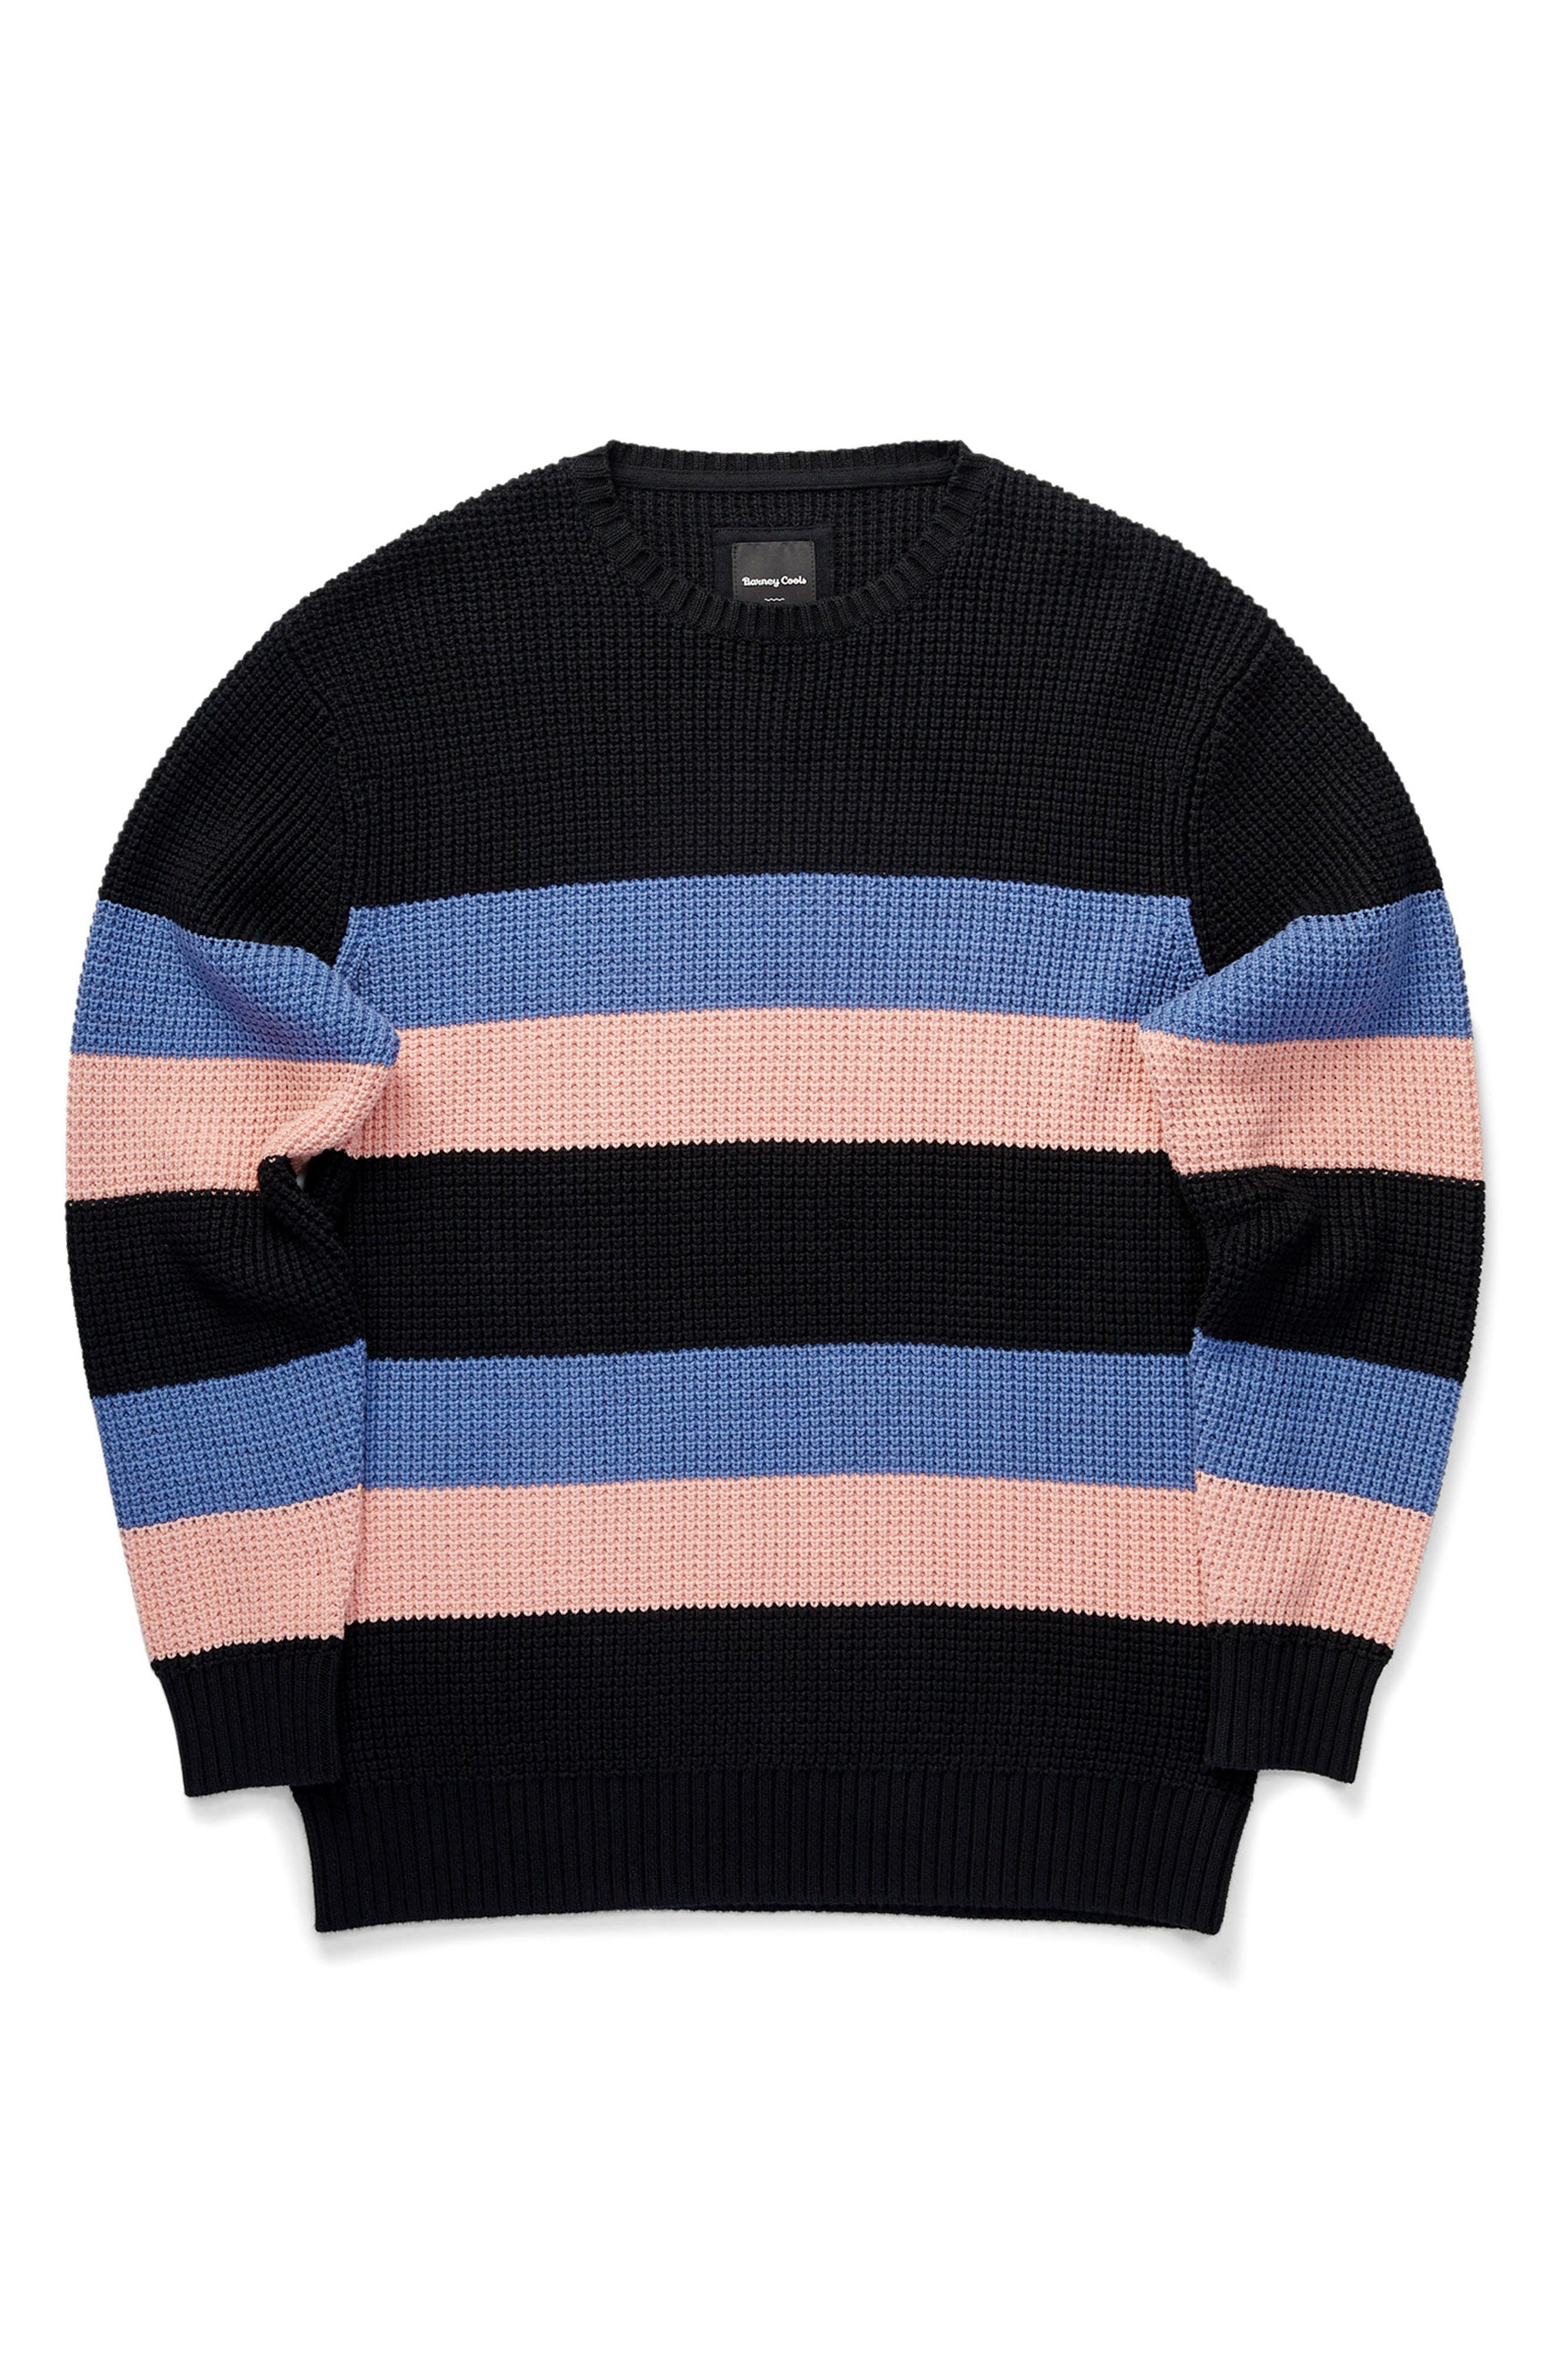 Rugby Stripe Sweater,                             Alternate thumbnail 4, color,                             001